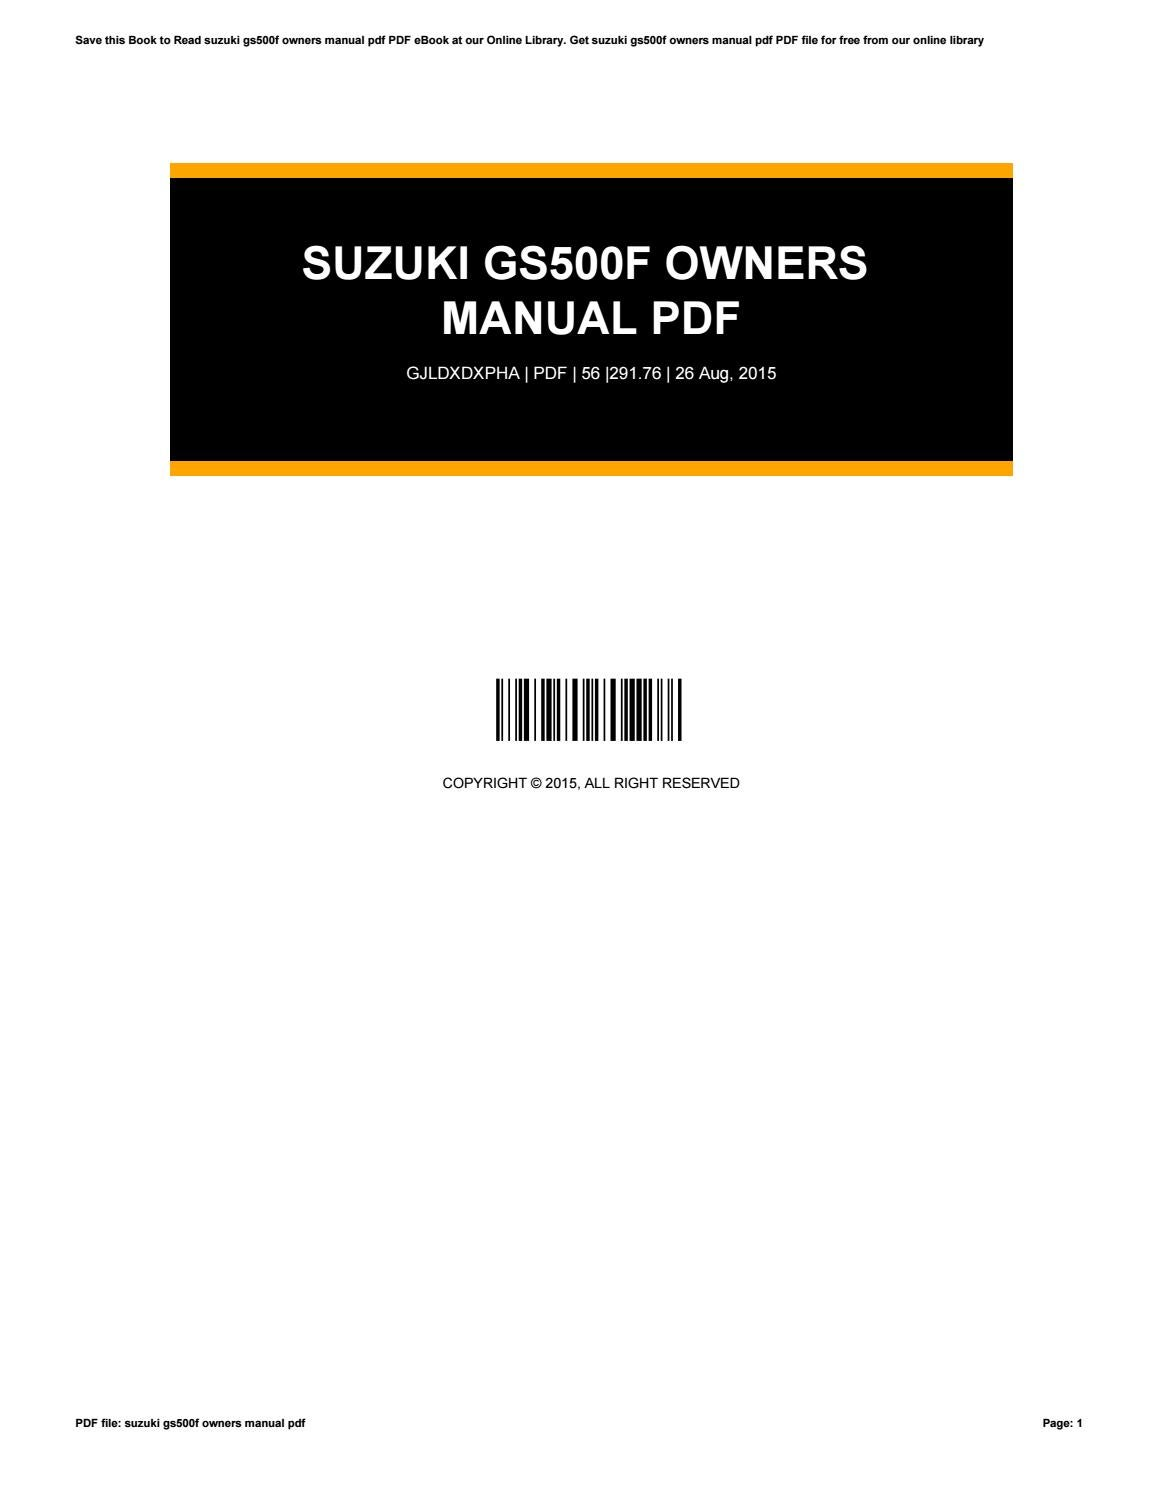 gs500f manual ebook